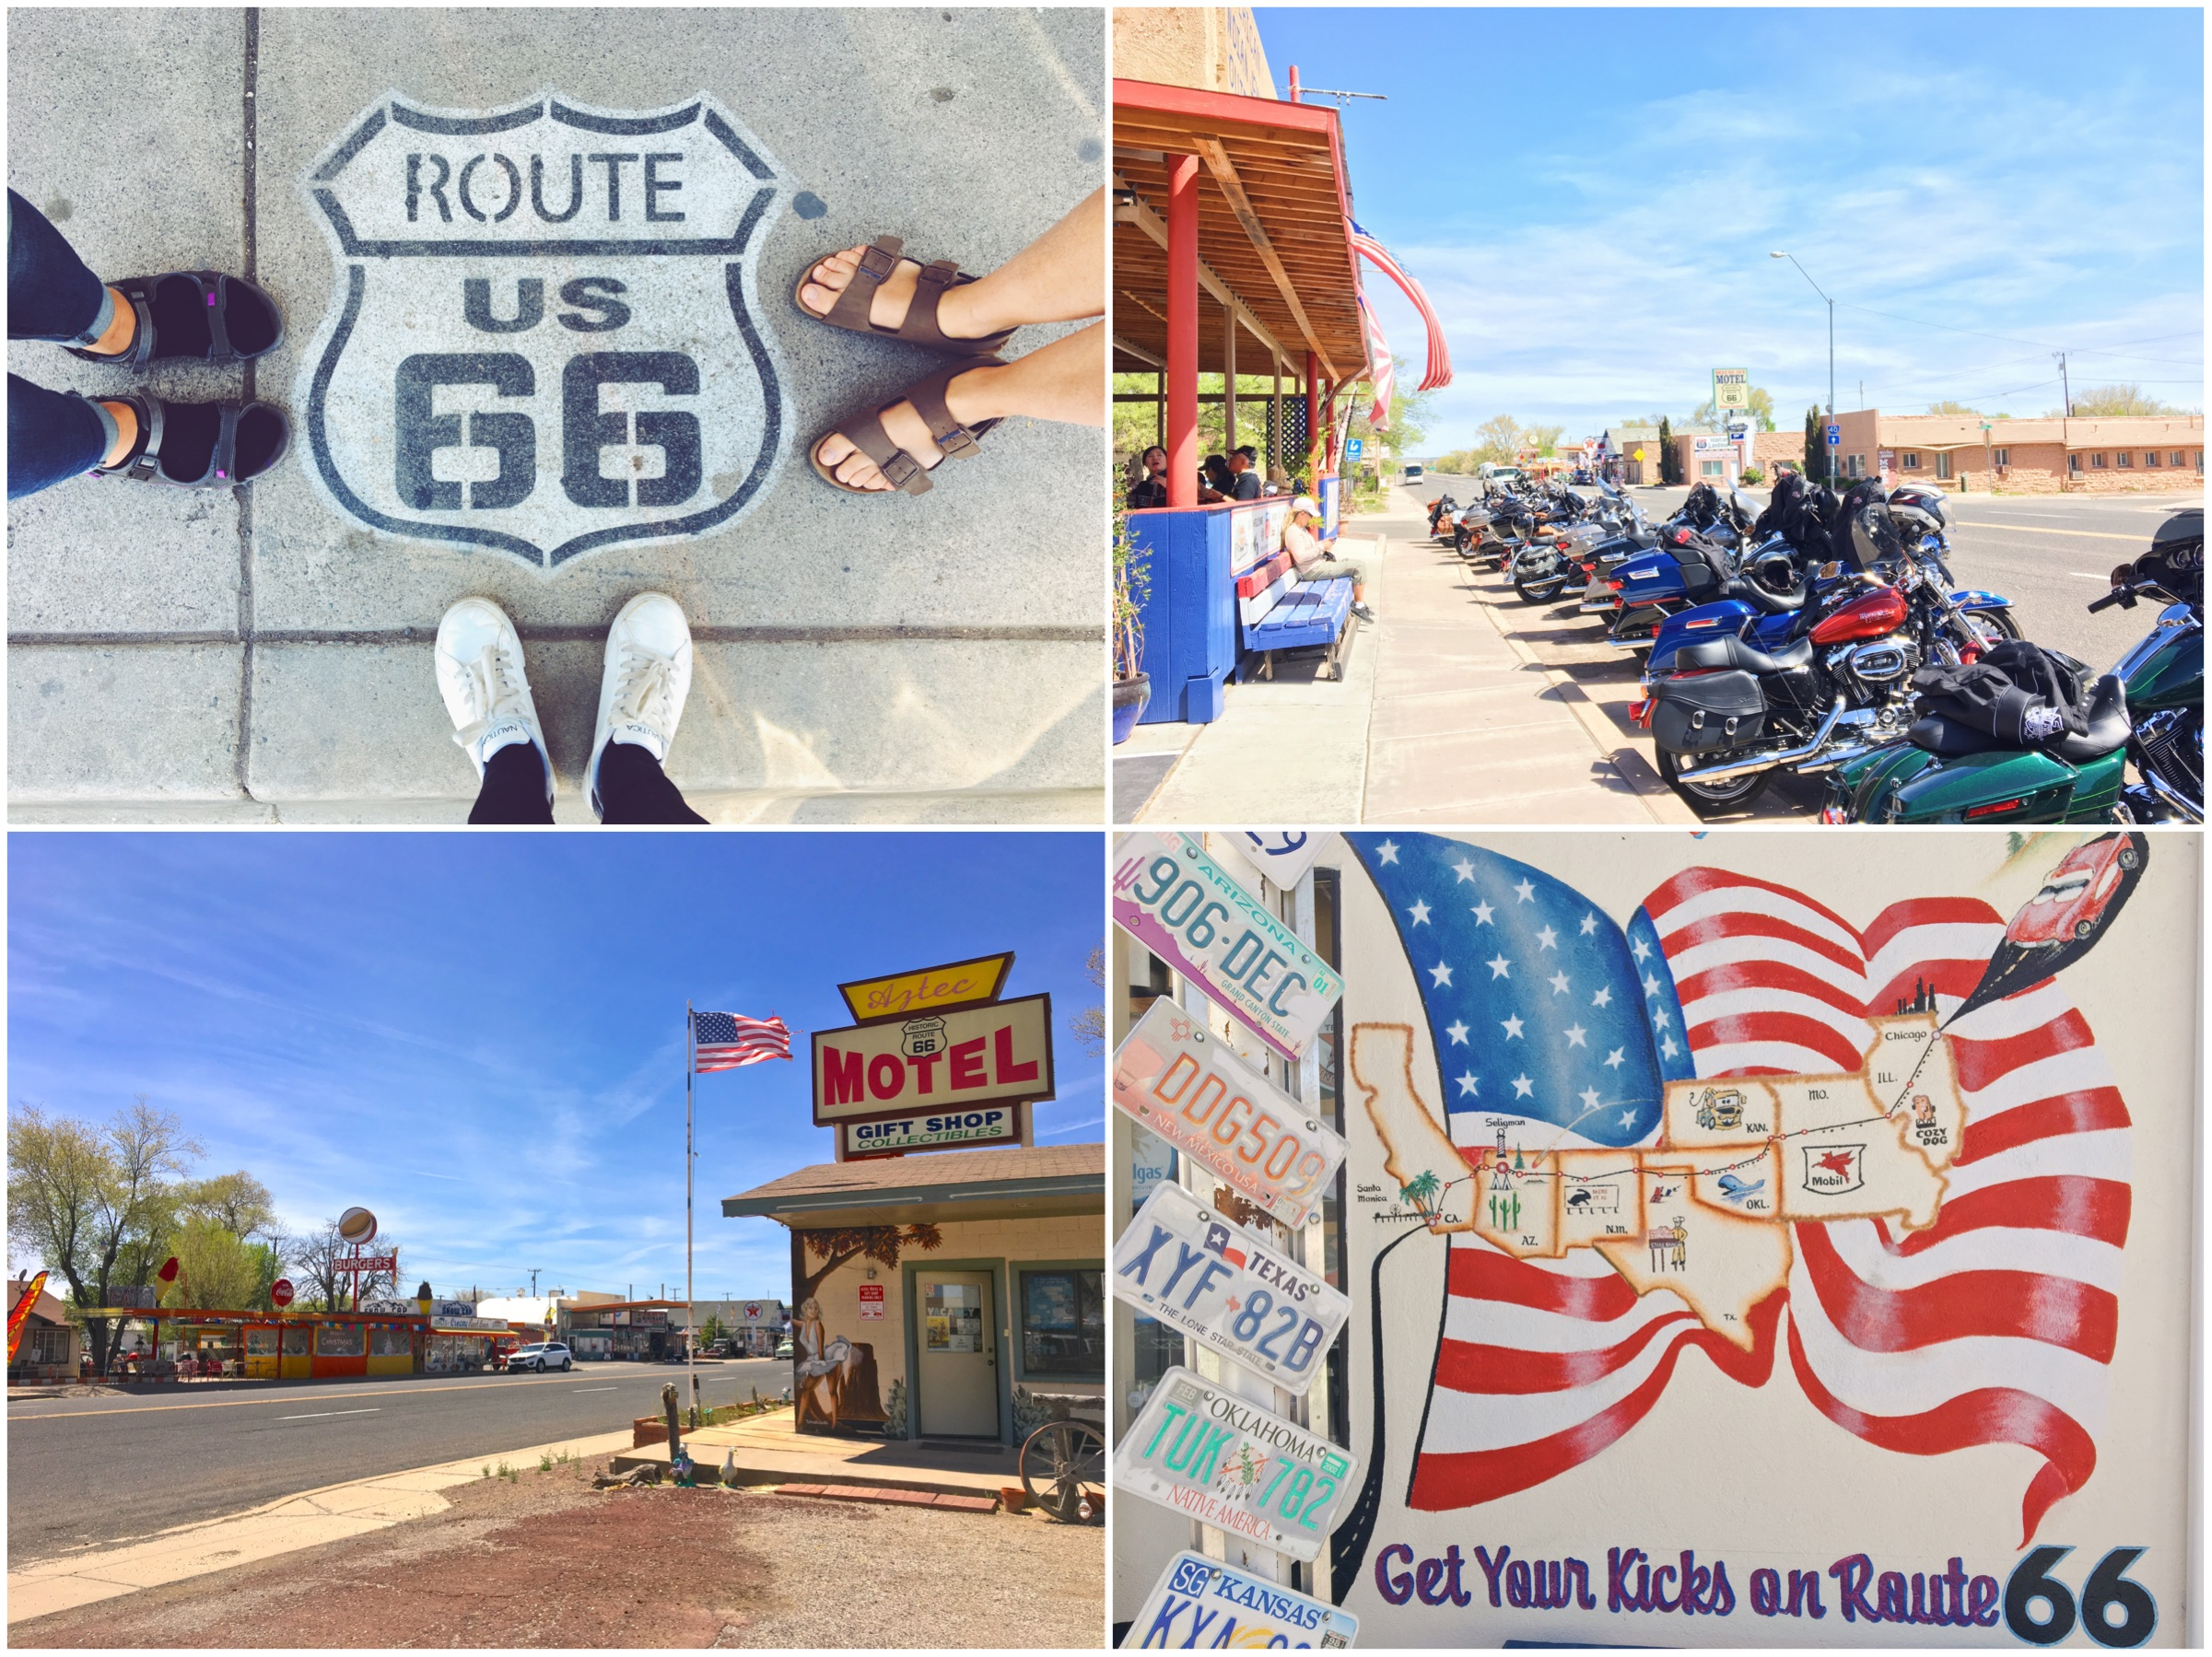 Percorrere la Route 66 on the road in Arizona e California